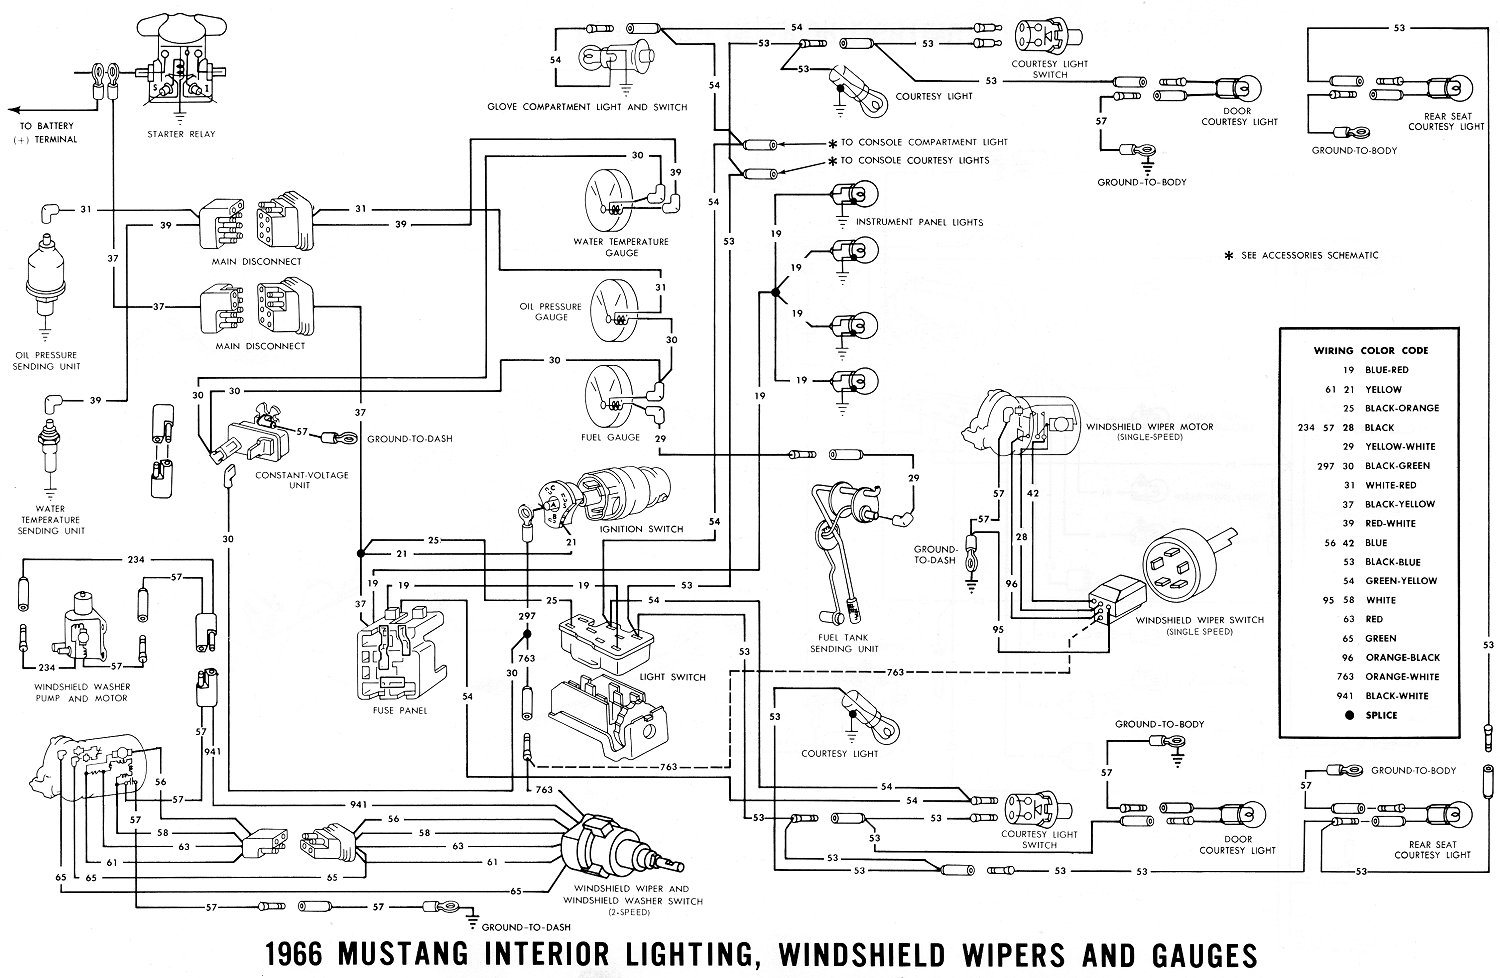 66inter1 vintage mustang wiring diagrams 1968 mustang ignition switch wiring diagram at n-0.co